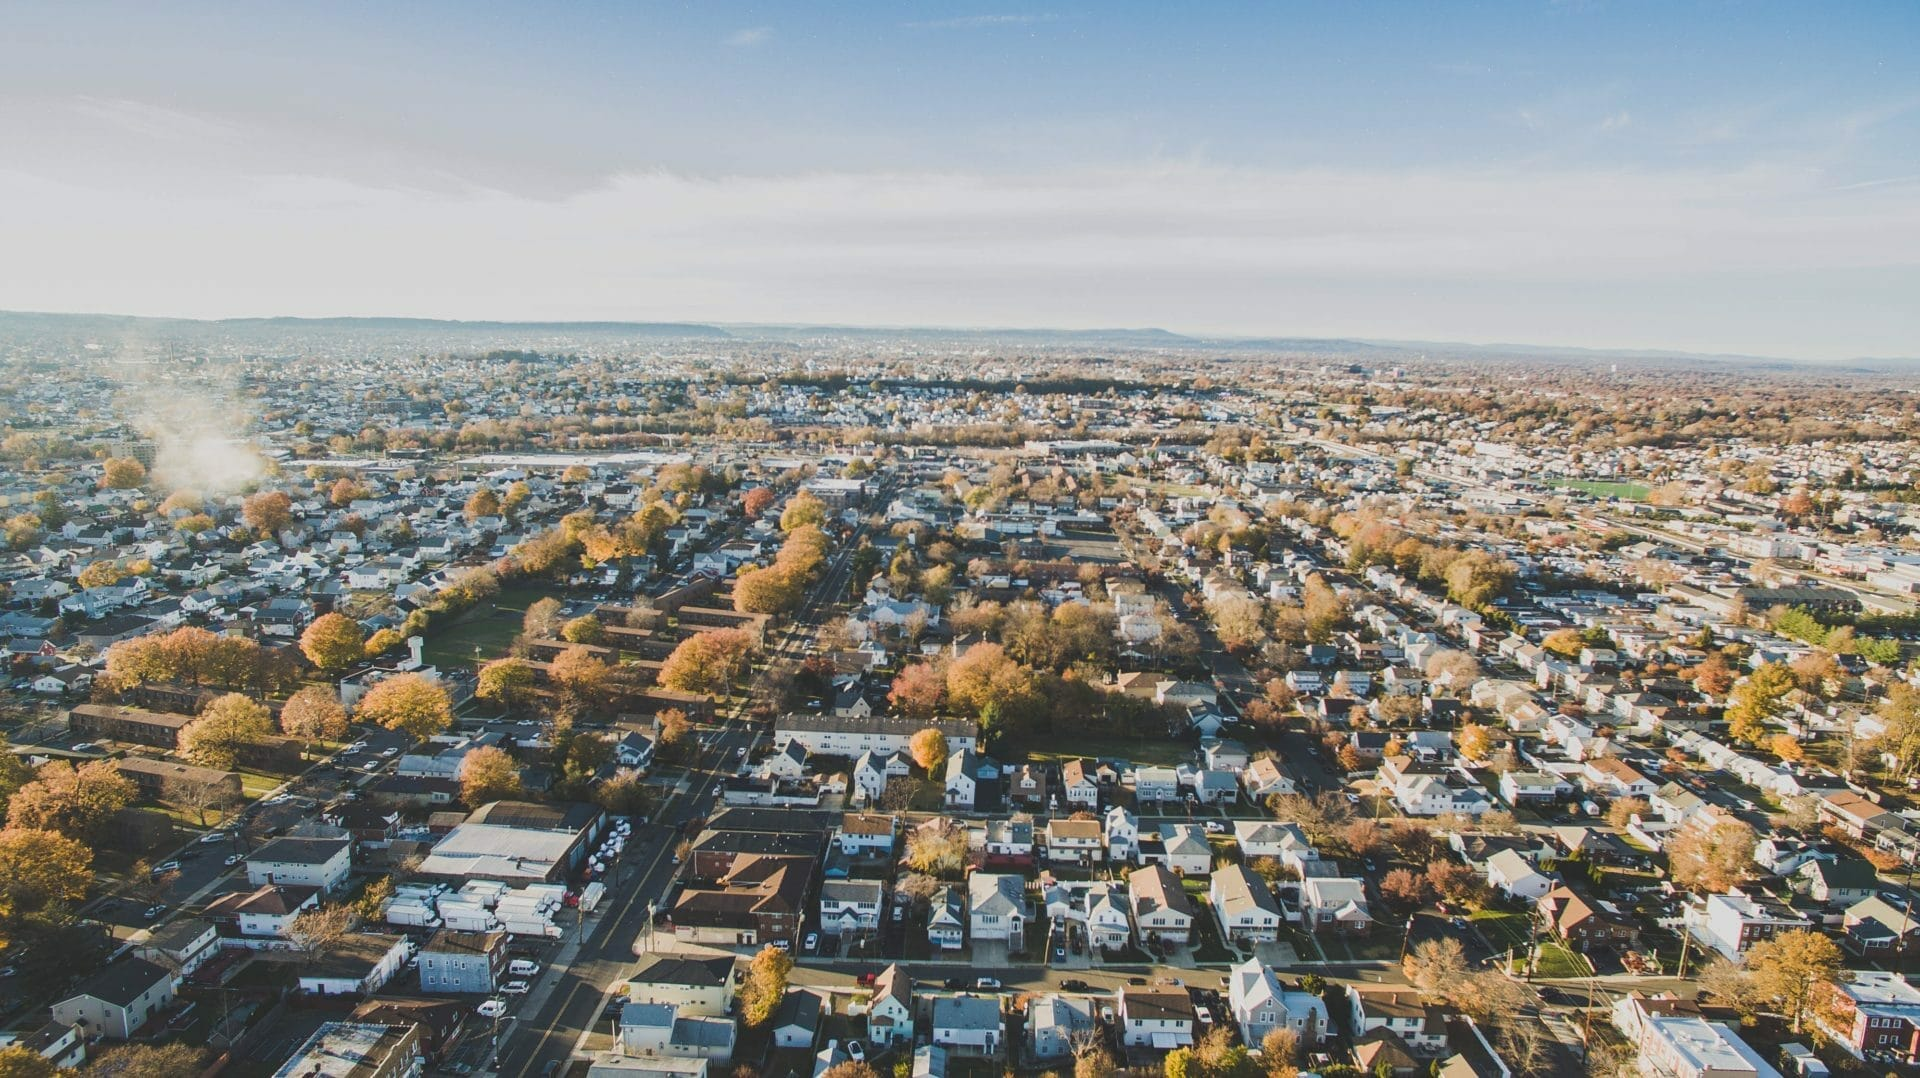 Picture of a Neighborhood for Real Estate News for Investors Podcast Episode #567